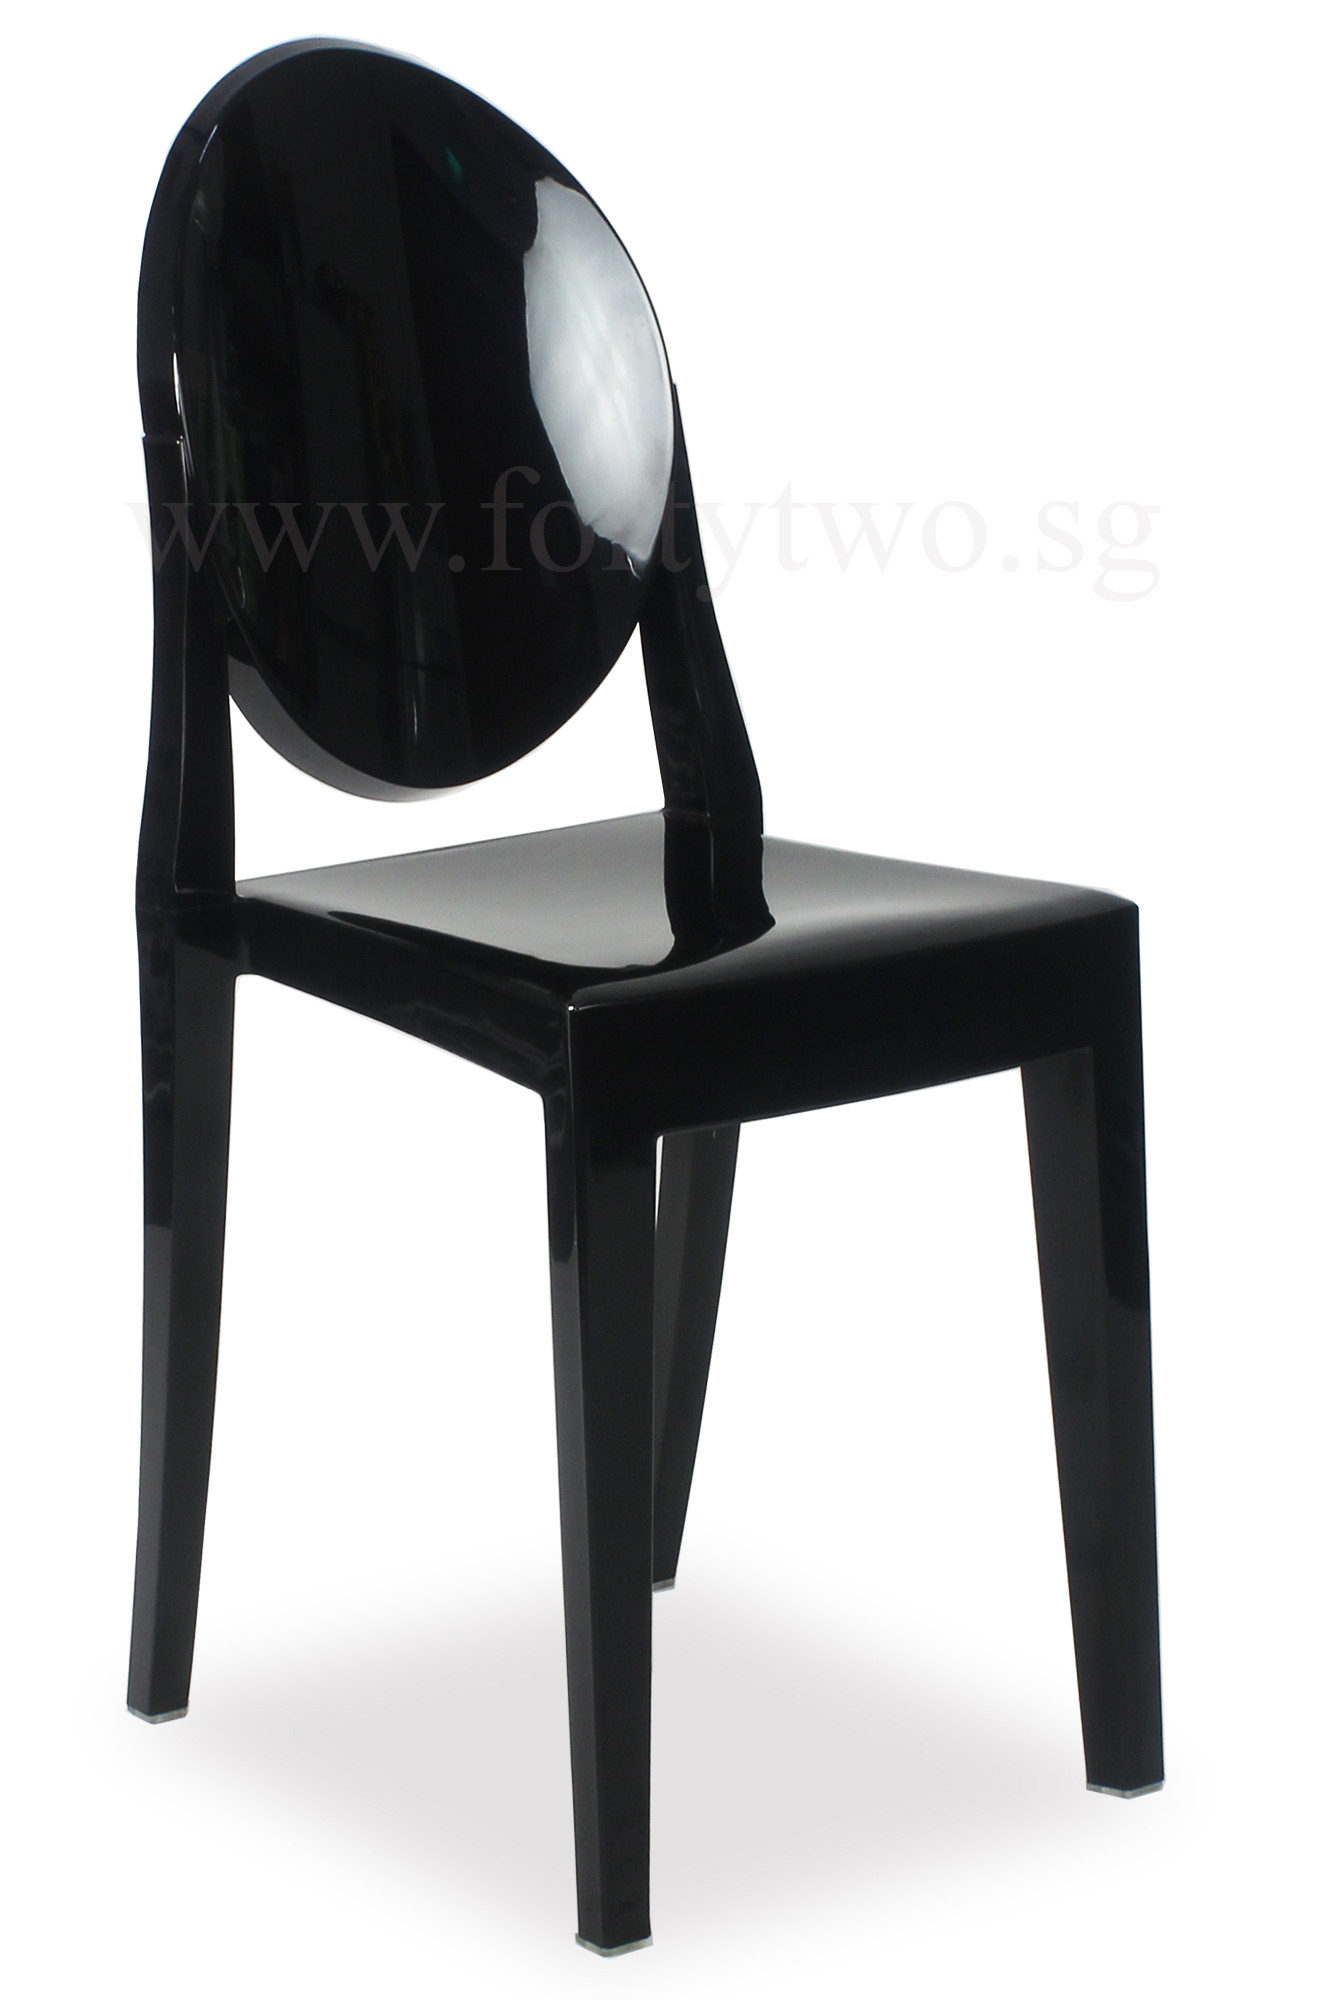 Louis Ghost Chair Black Www Pixshark Com Images